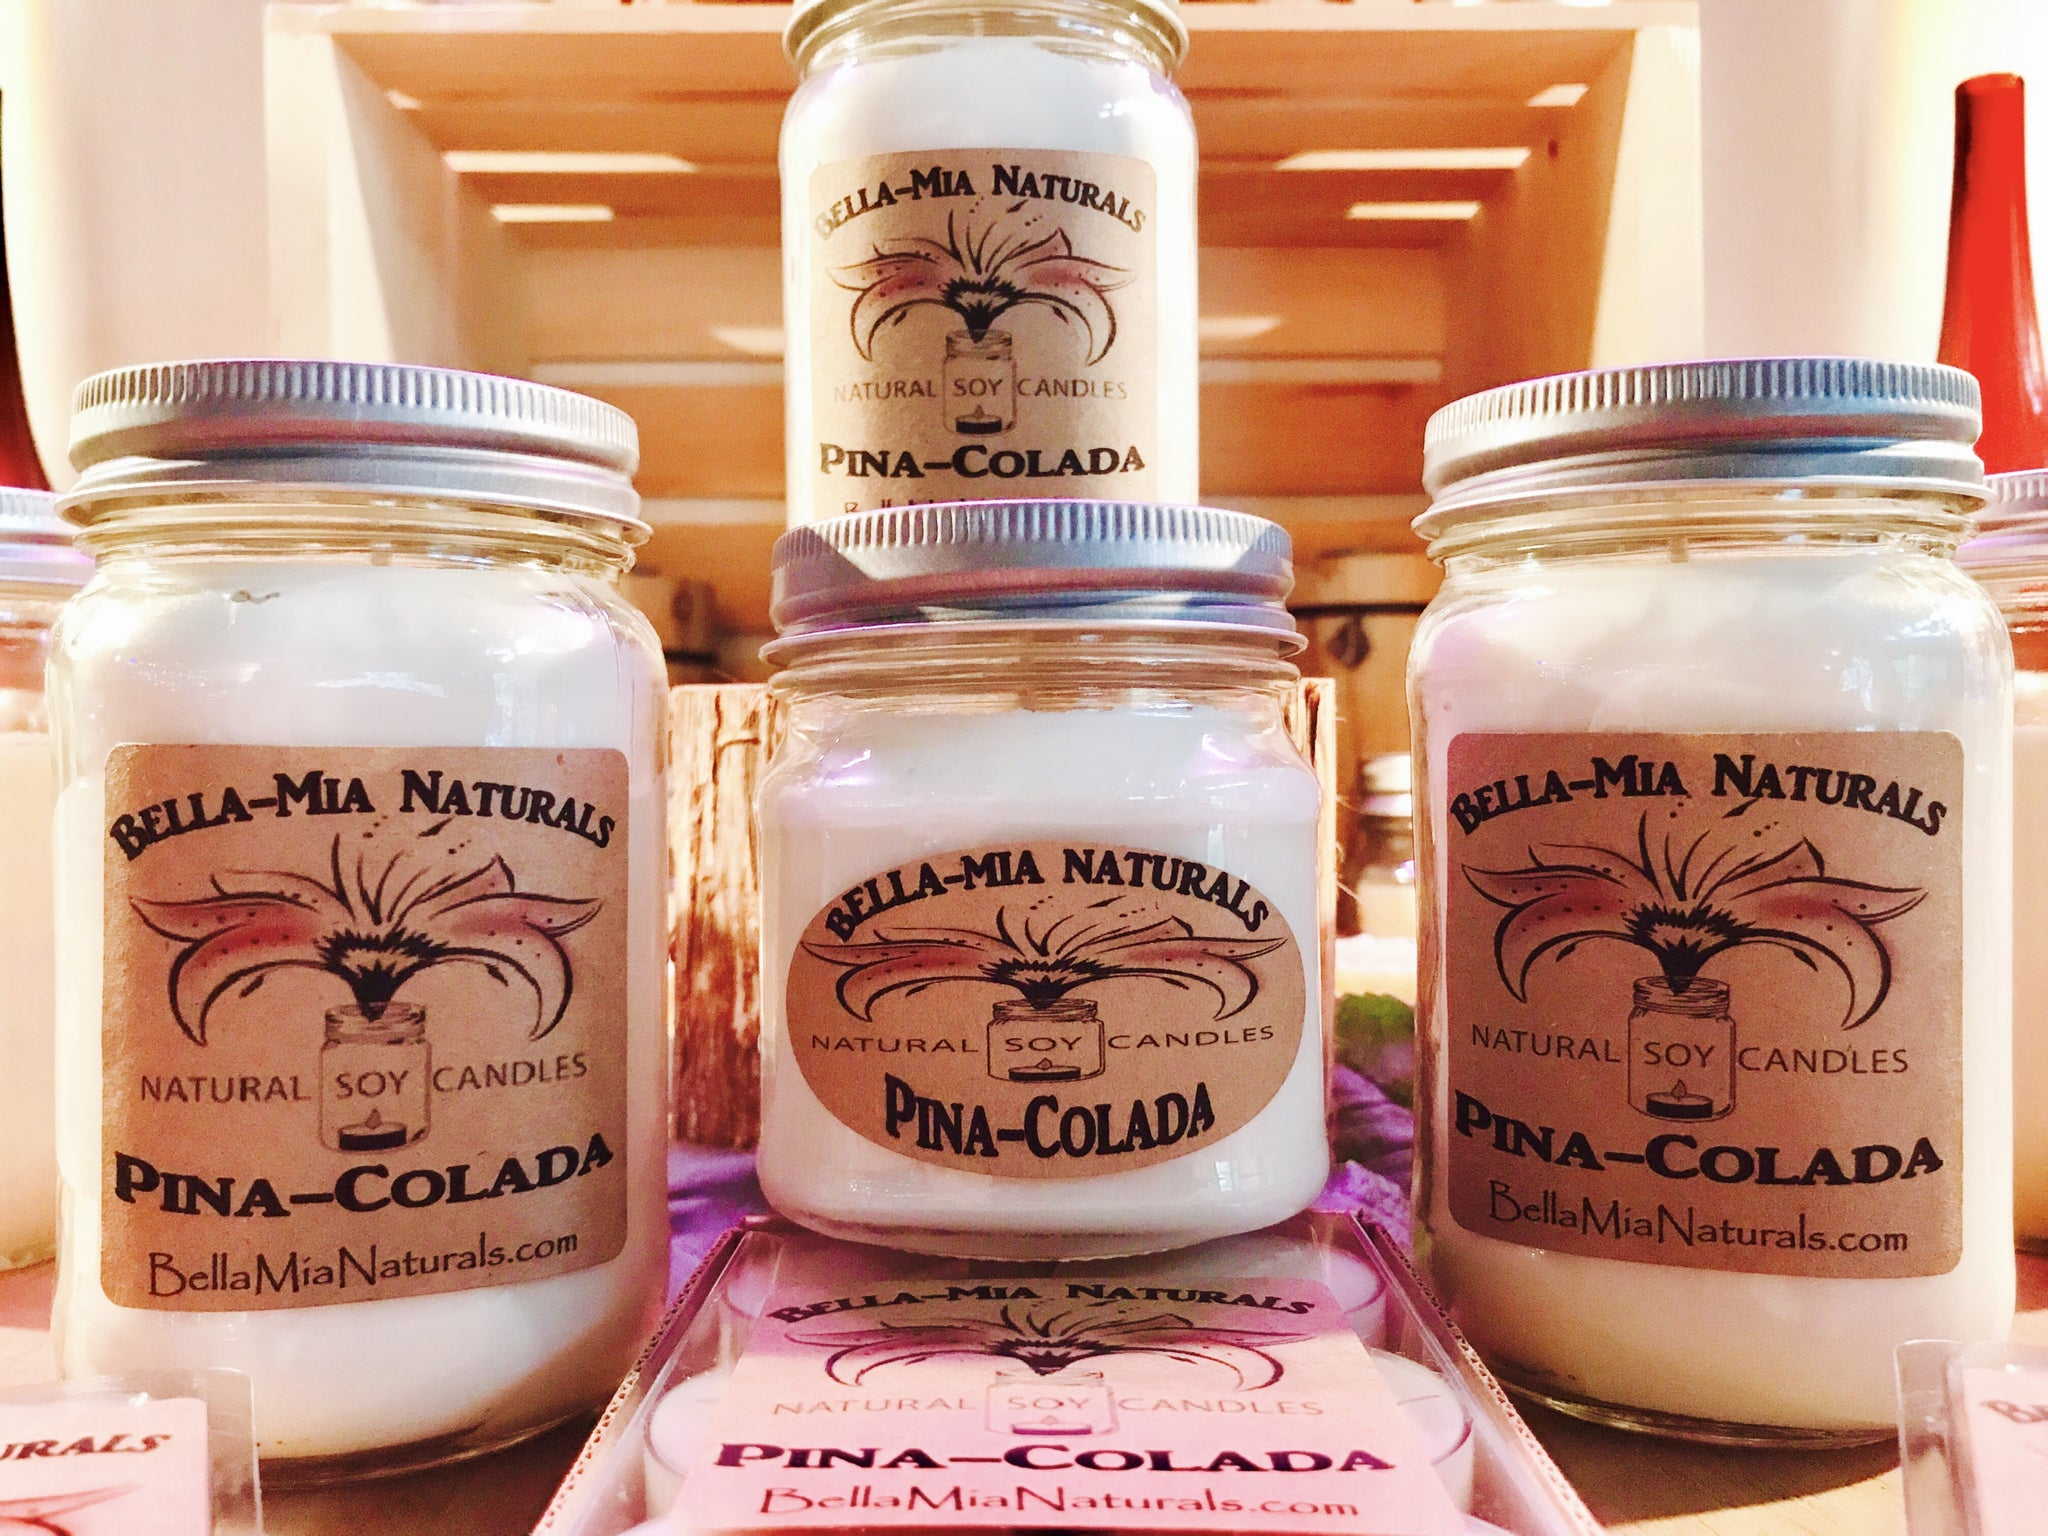 Pina-Colada Natural Hand Poured Soy Candles